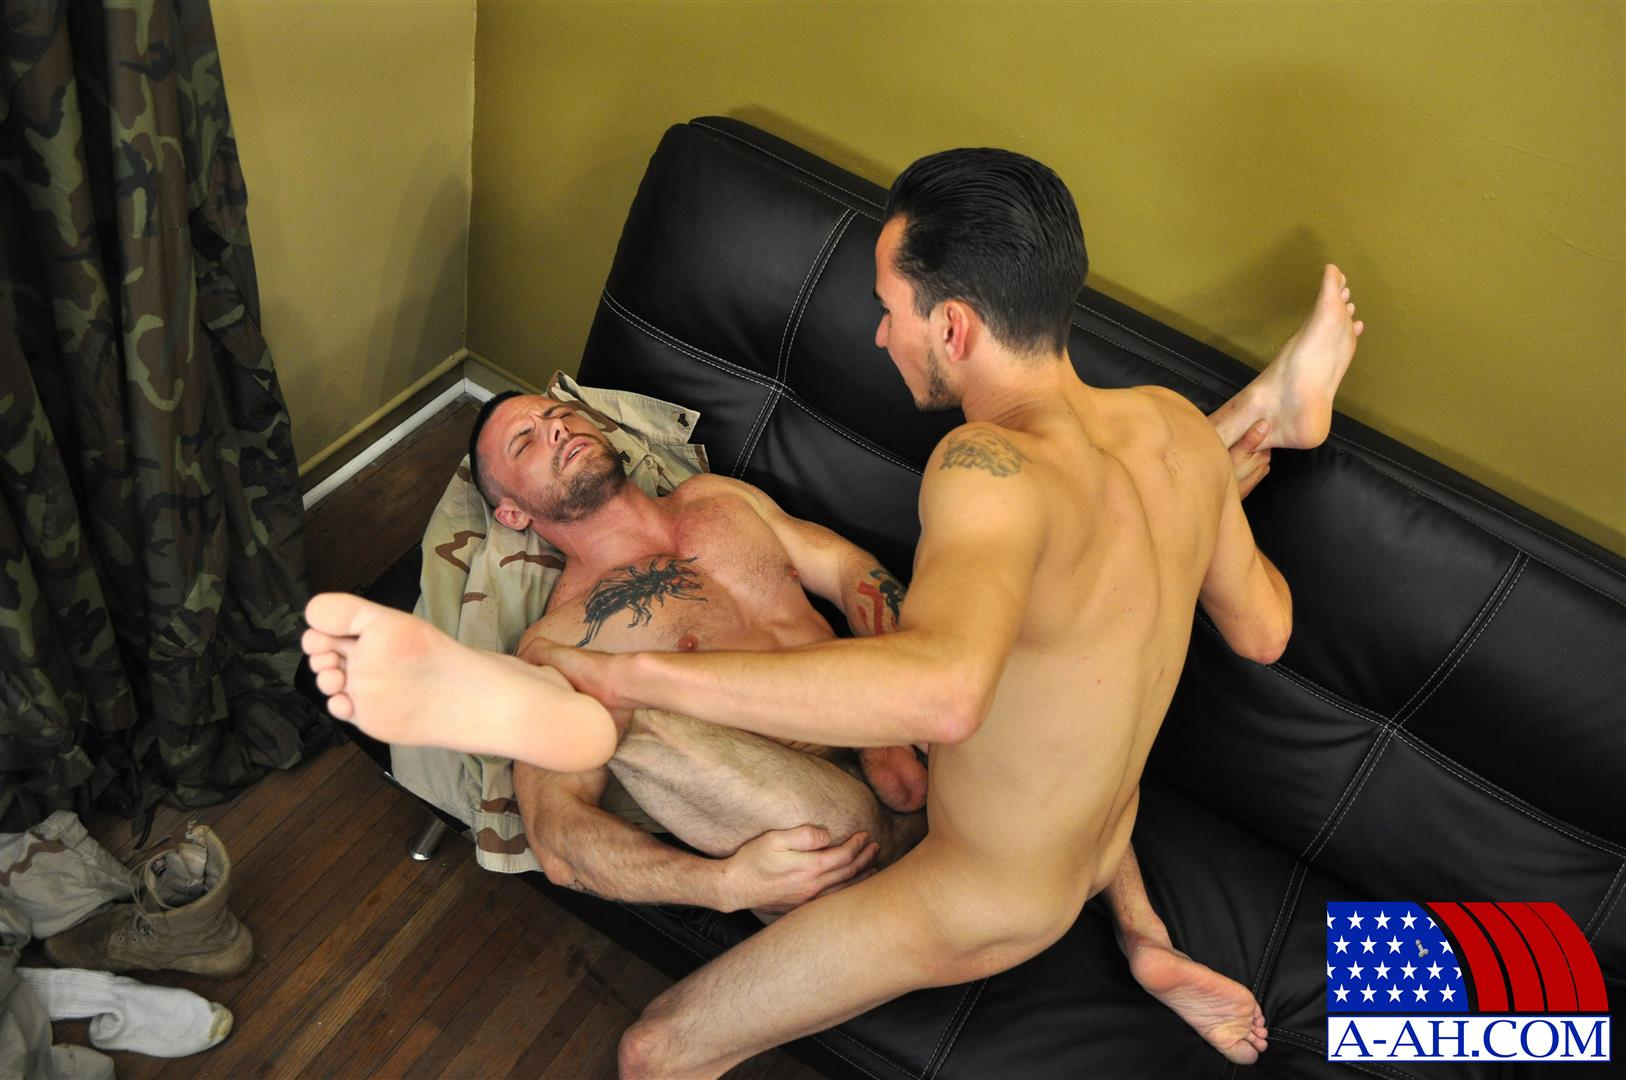 All-American-Heroes-CIVILIAN-MARTEN-FUCKS-SERGEANT-MILES-Army-Guy-Fucking-Amateur-Gay-Porn-11 US Army Sergeant Gets Fucked In The Ass By His Civilian Buddy